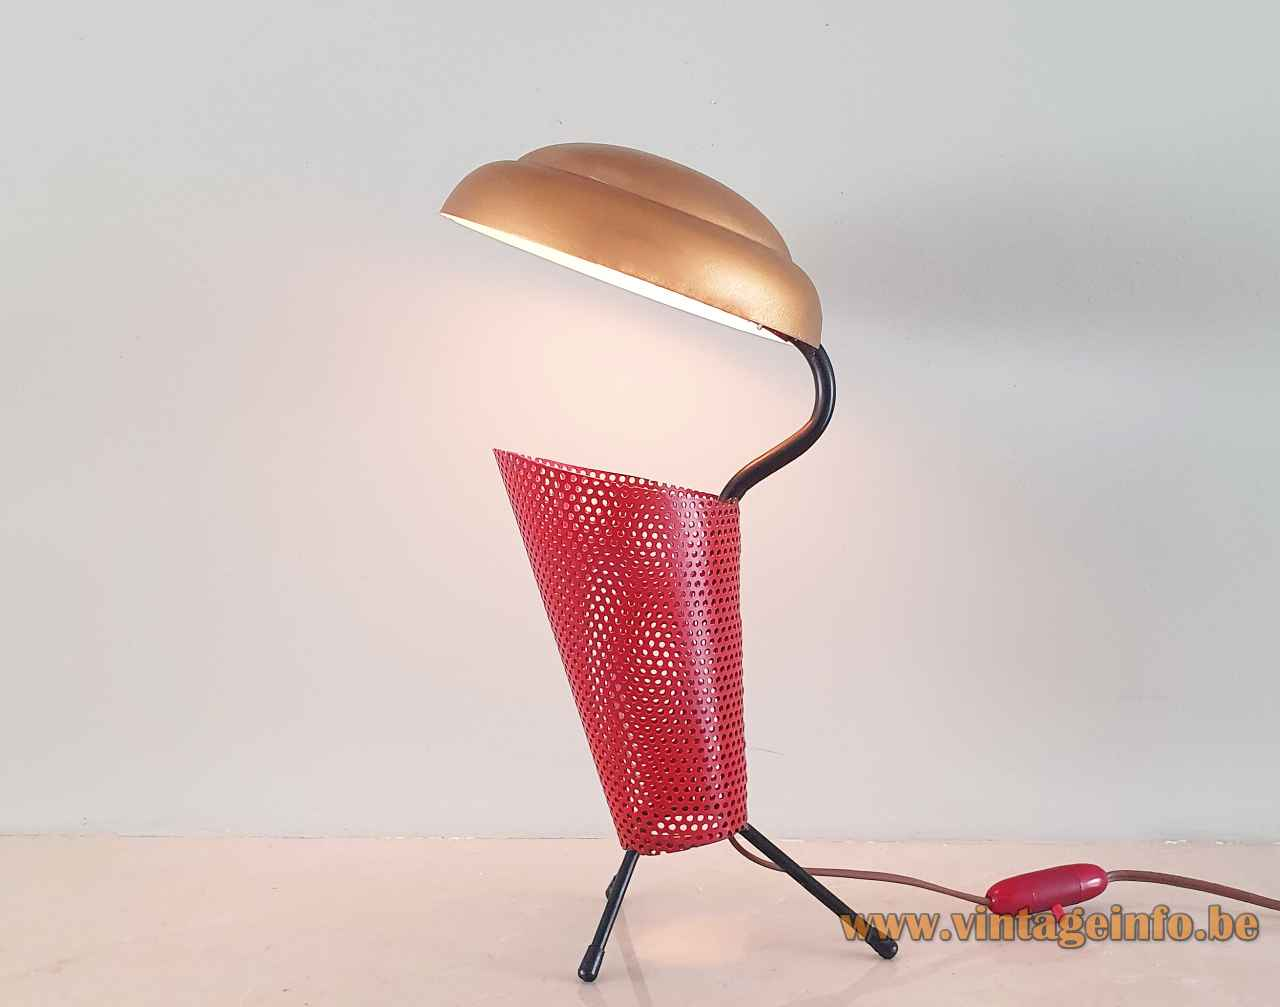 Aluminor tripod table lamp perforated red gauze tube round gold disc lampshade 1950s 1960s France